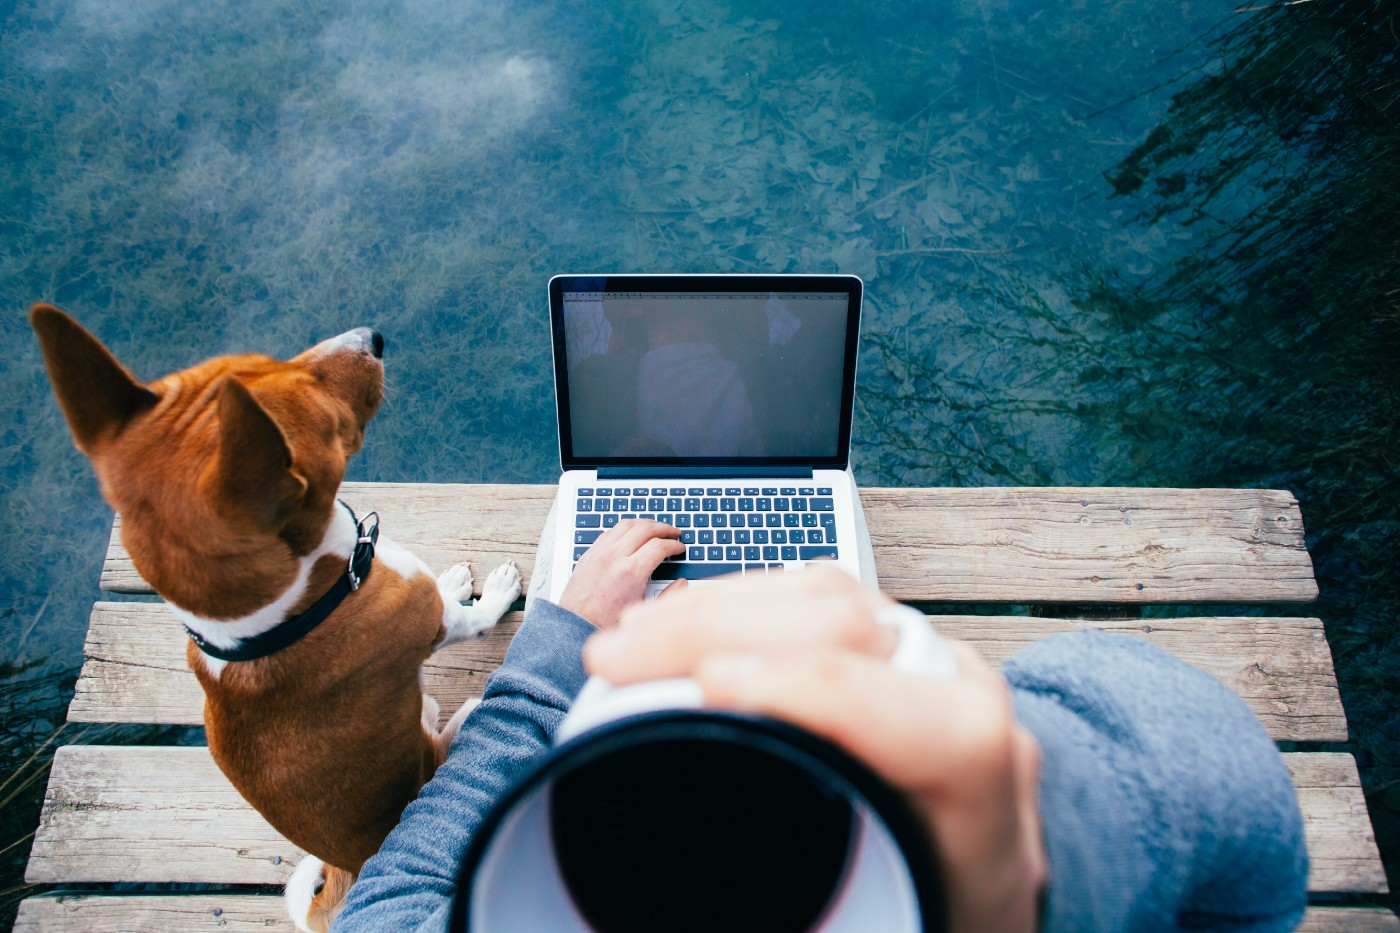 Man typing on laptop with dog.